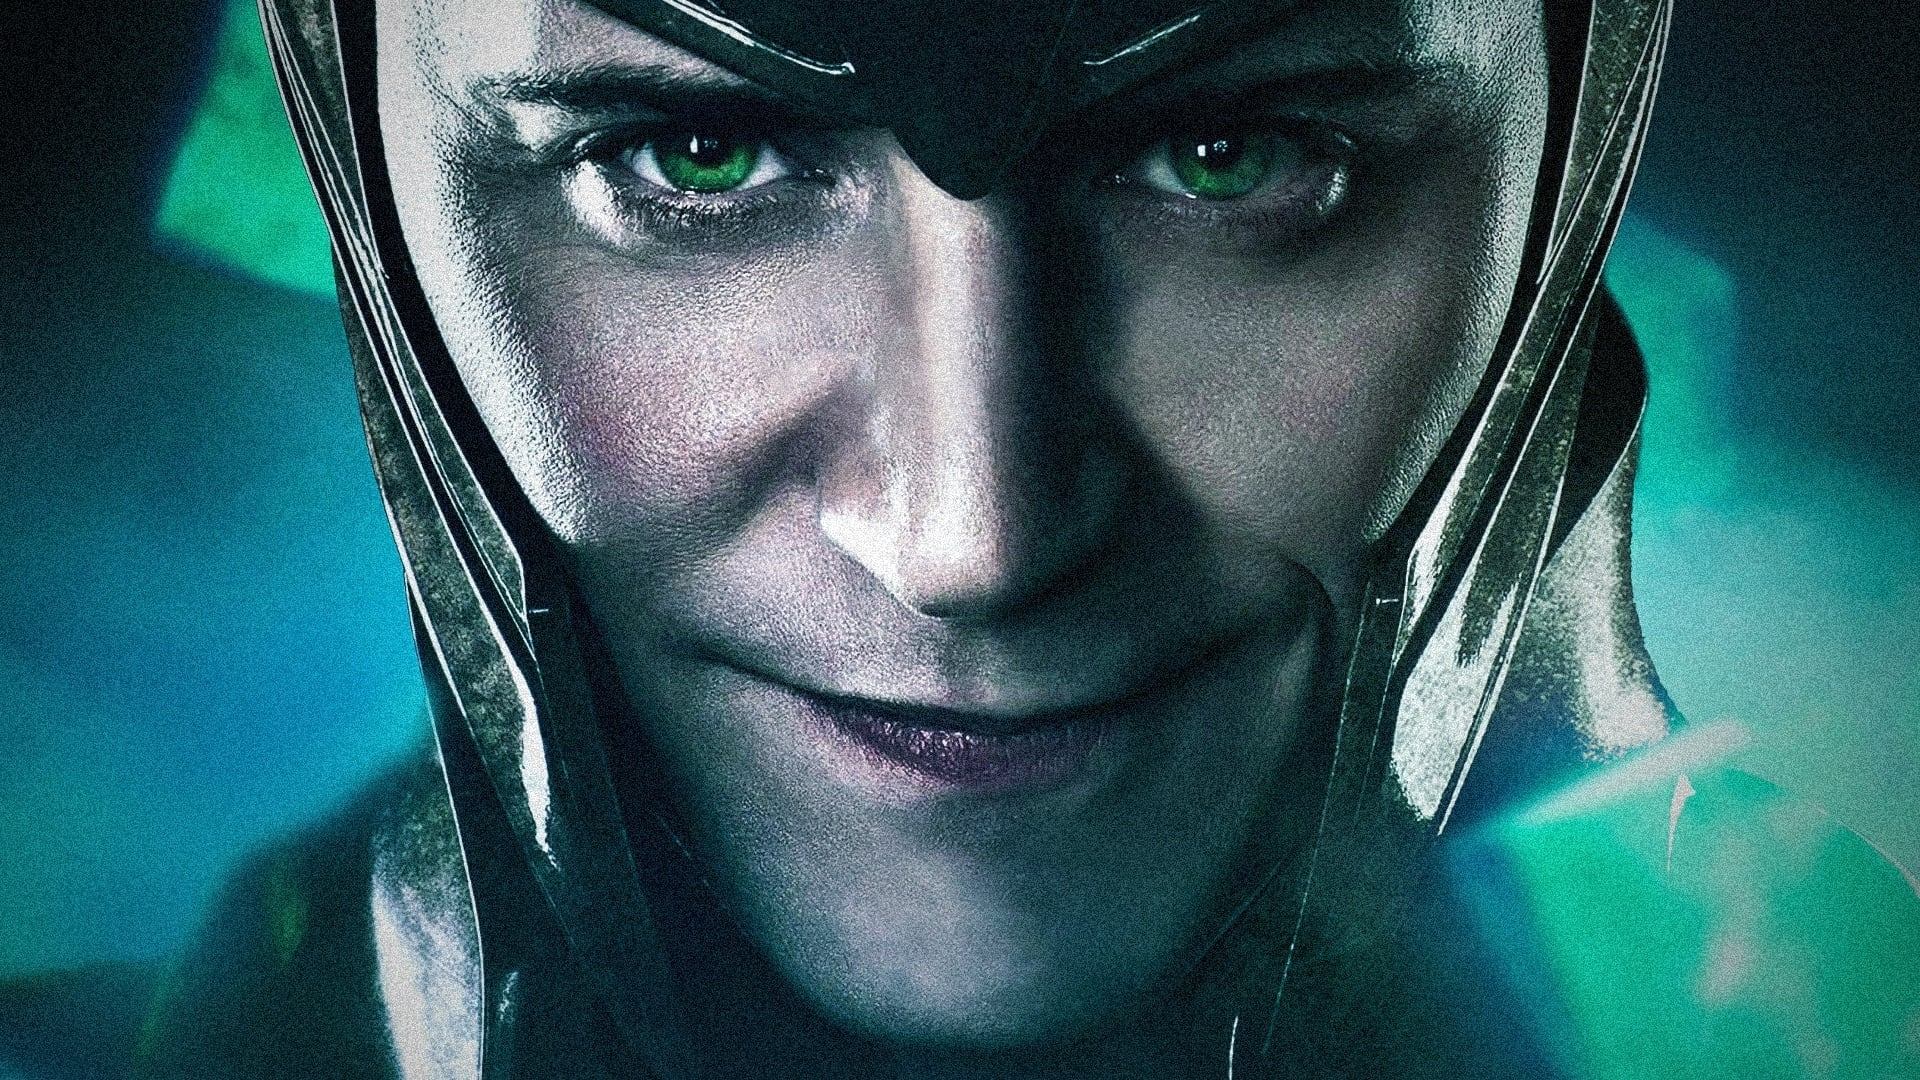 Trailer for superhero series Marvel's Loki